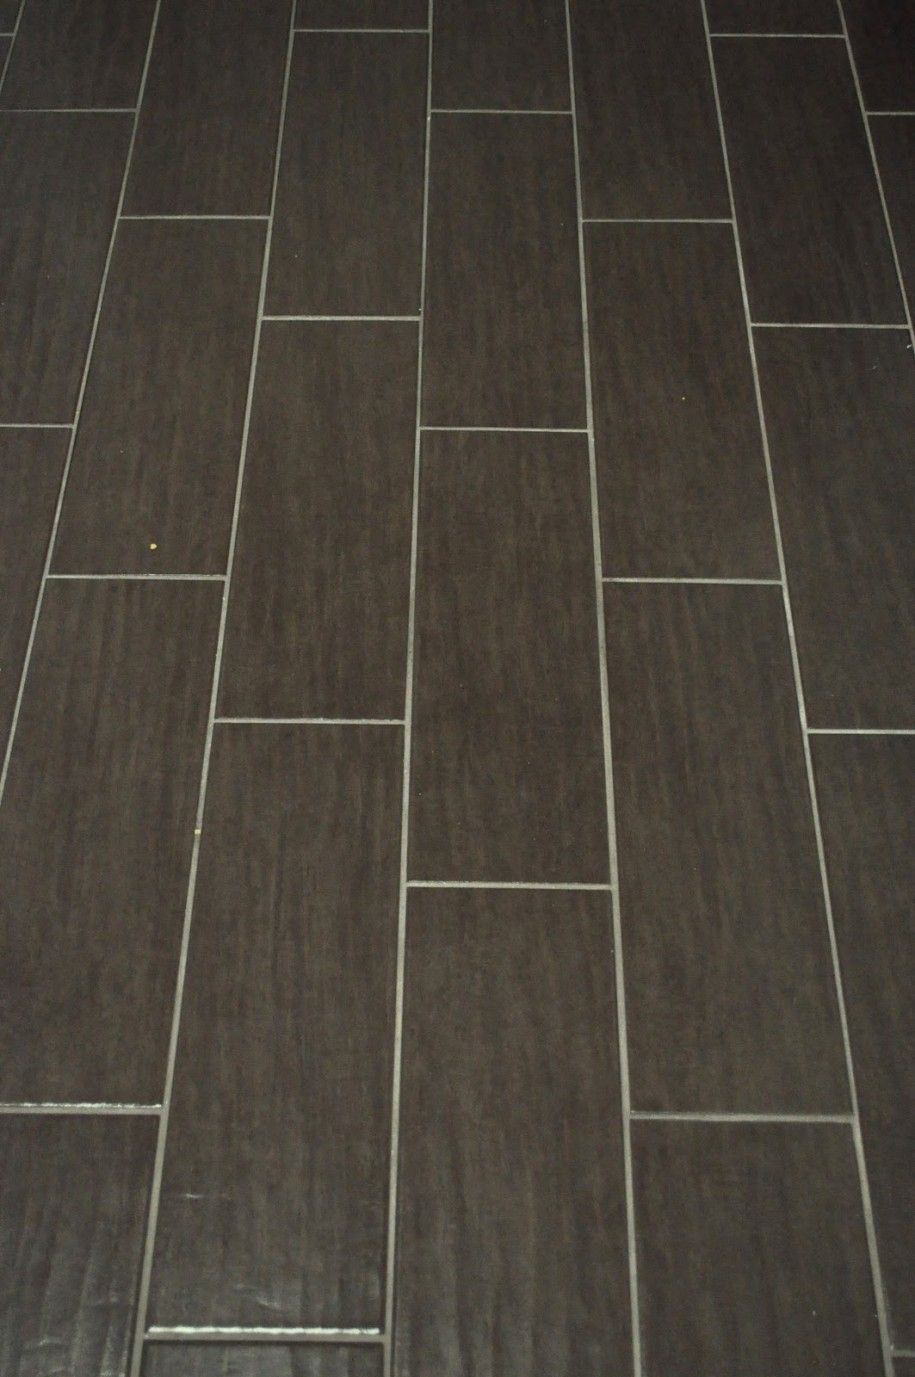 Dark brown floor tile grout httpnextsoft21 pinterest dark brown floor tile grout dailygadgetfo Gallery